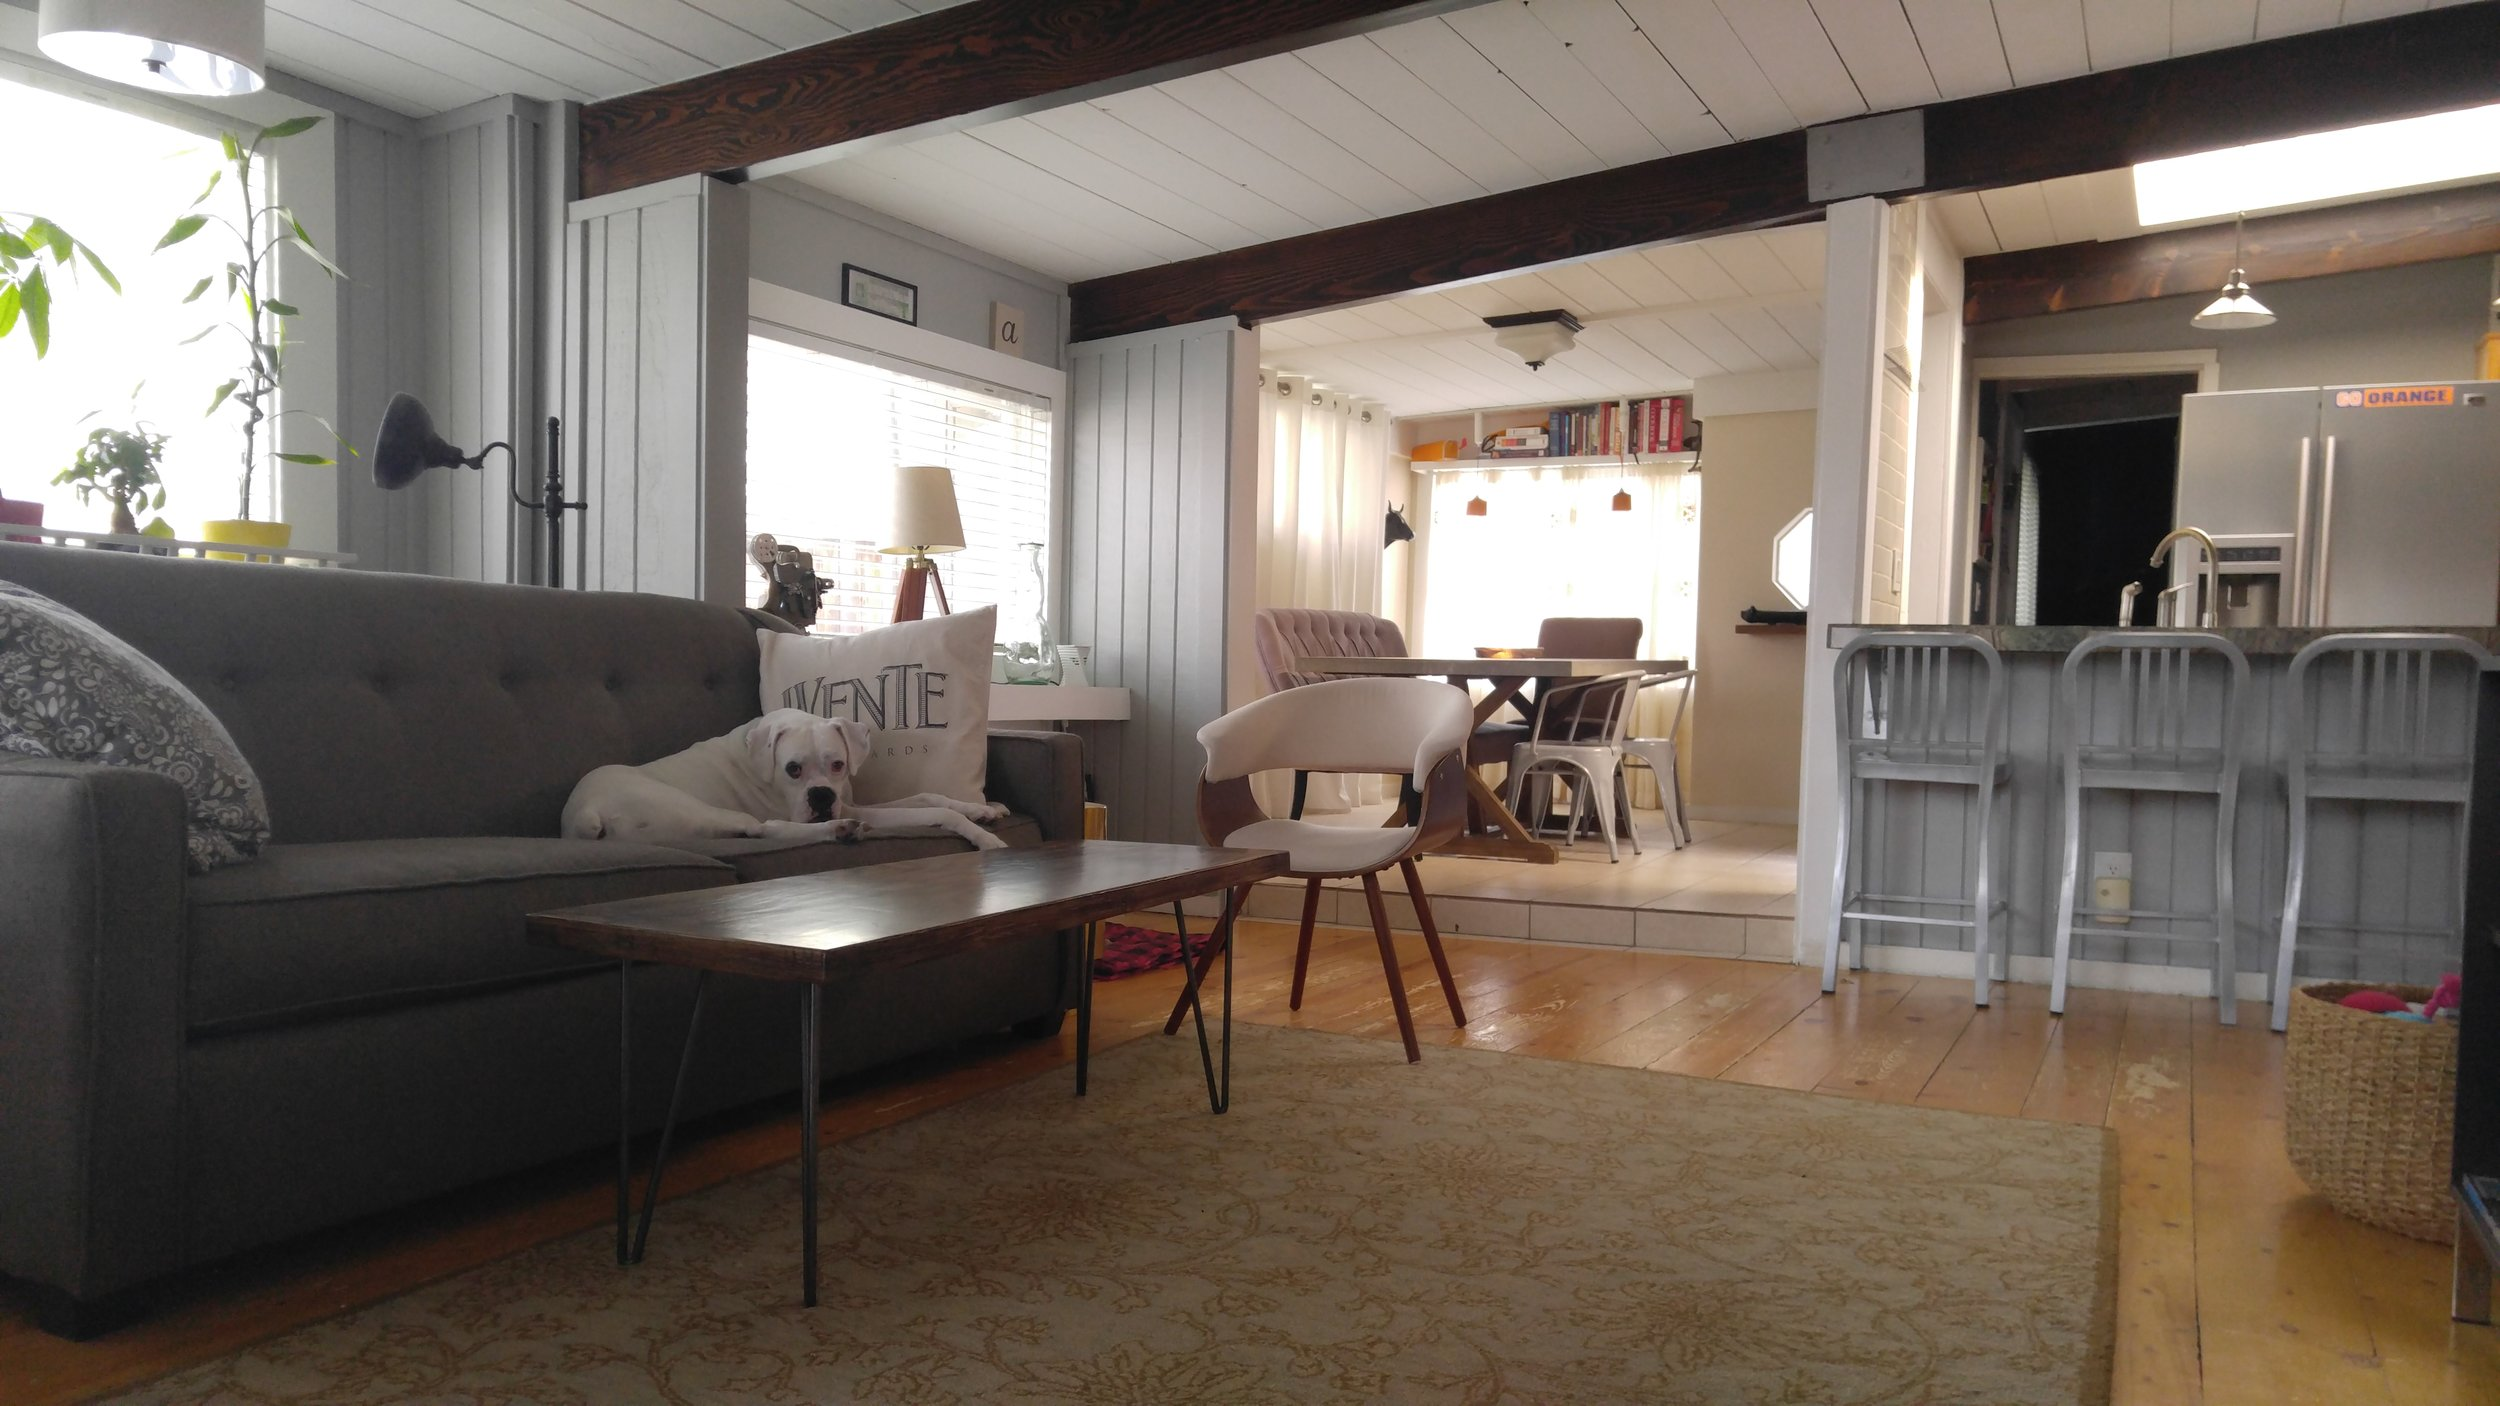 Interior design concept & services by  The Neighbor's House